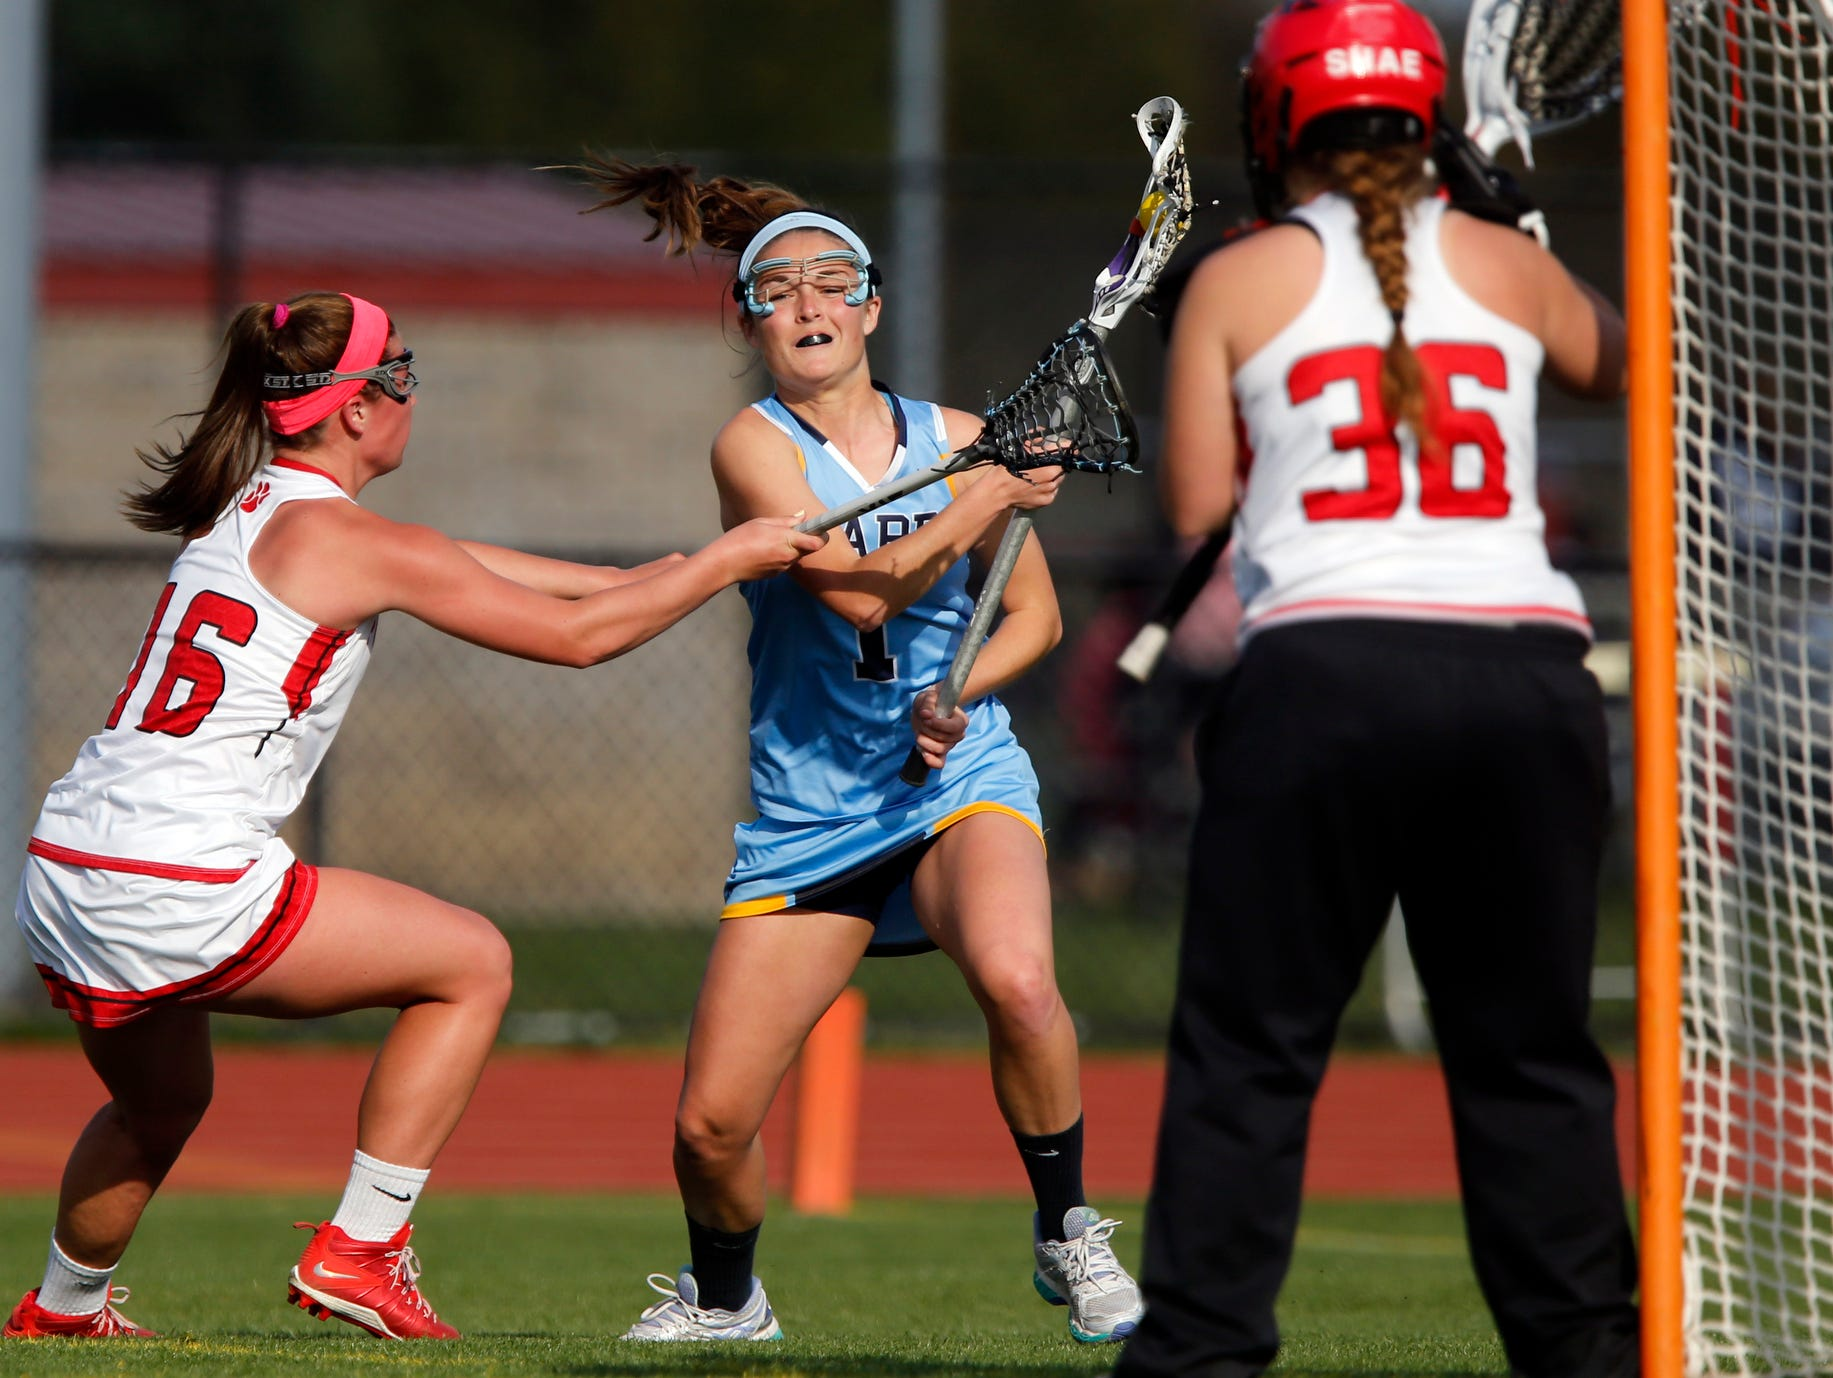 Cape Henlopen's Lizzie Frederick (center), the Delaware girls lacrosse Co-Player of the Year, battles between Polytech defender Jamie Trabaudo (left) and goalie Shae Stephan.